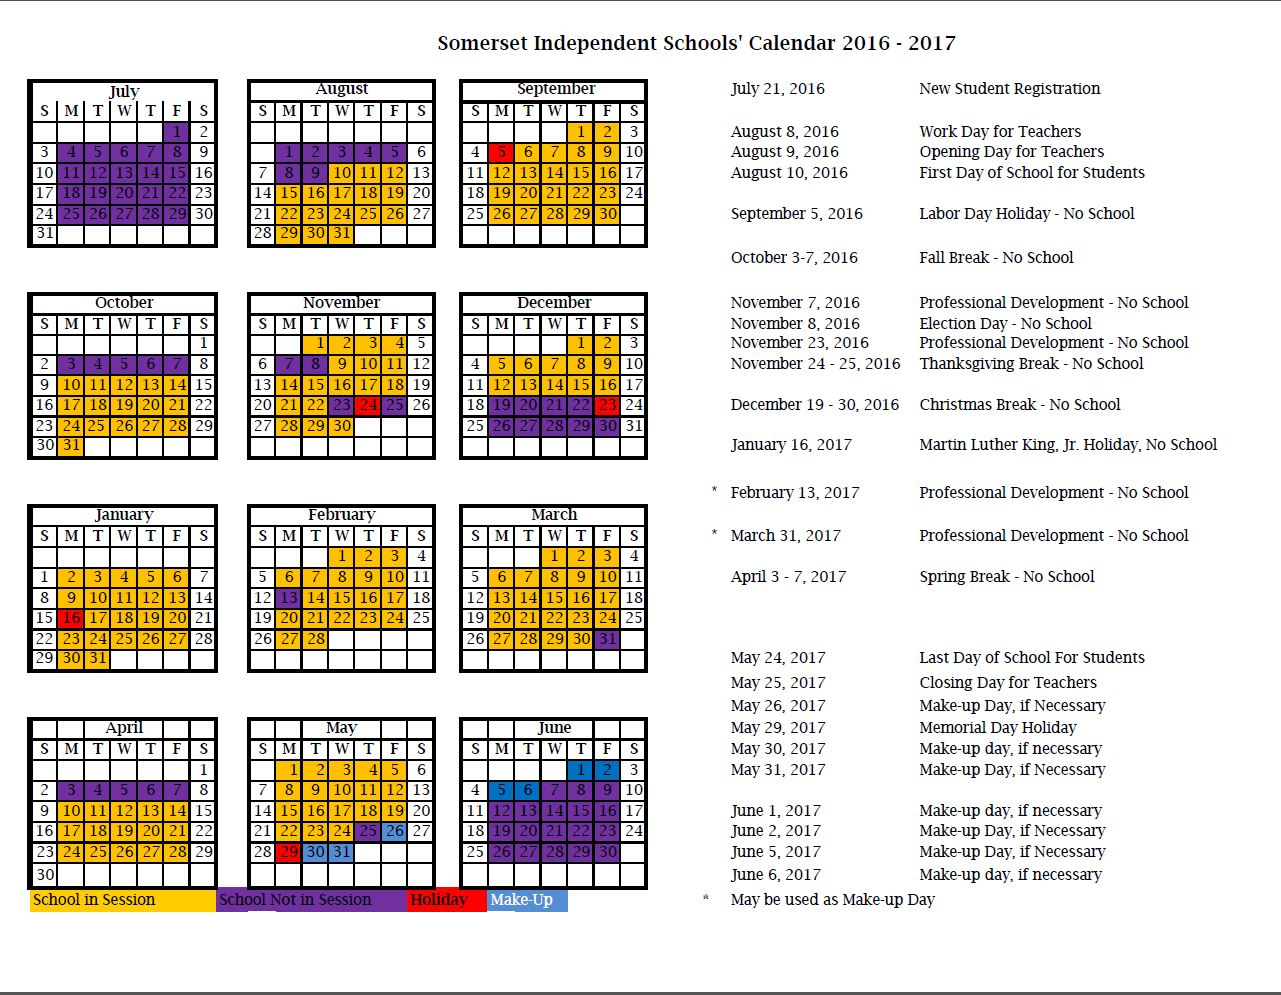 Revised calendar for 2017-2017